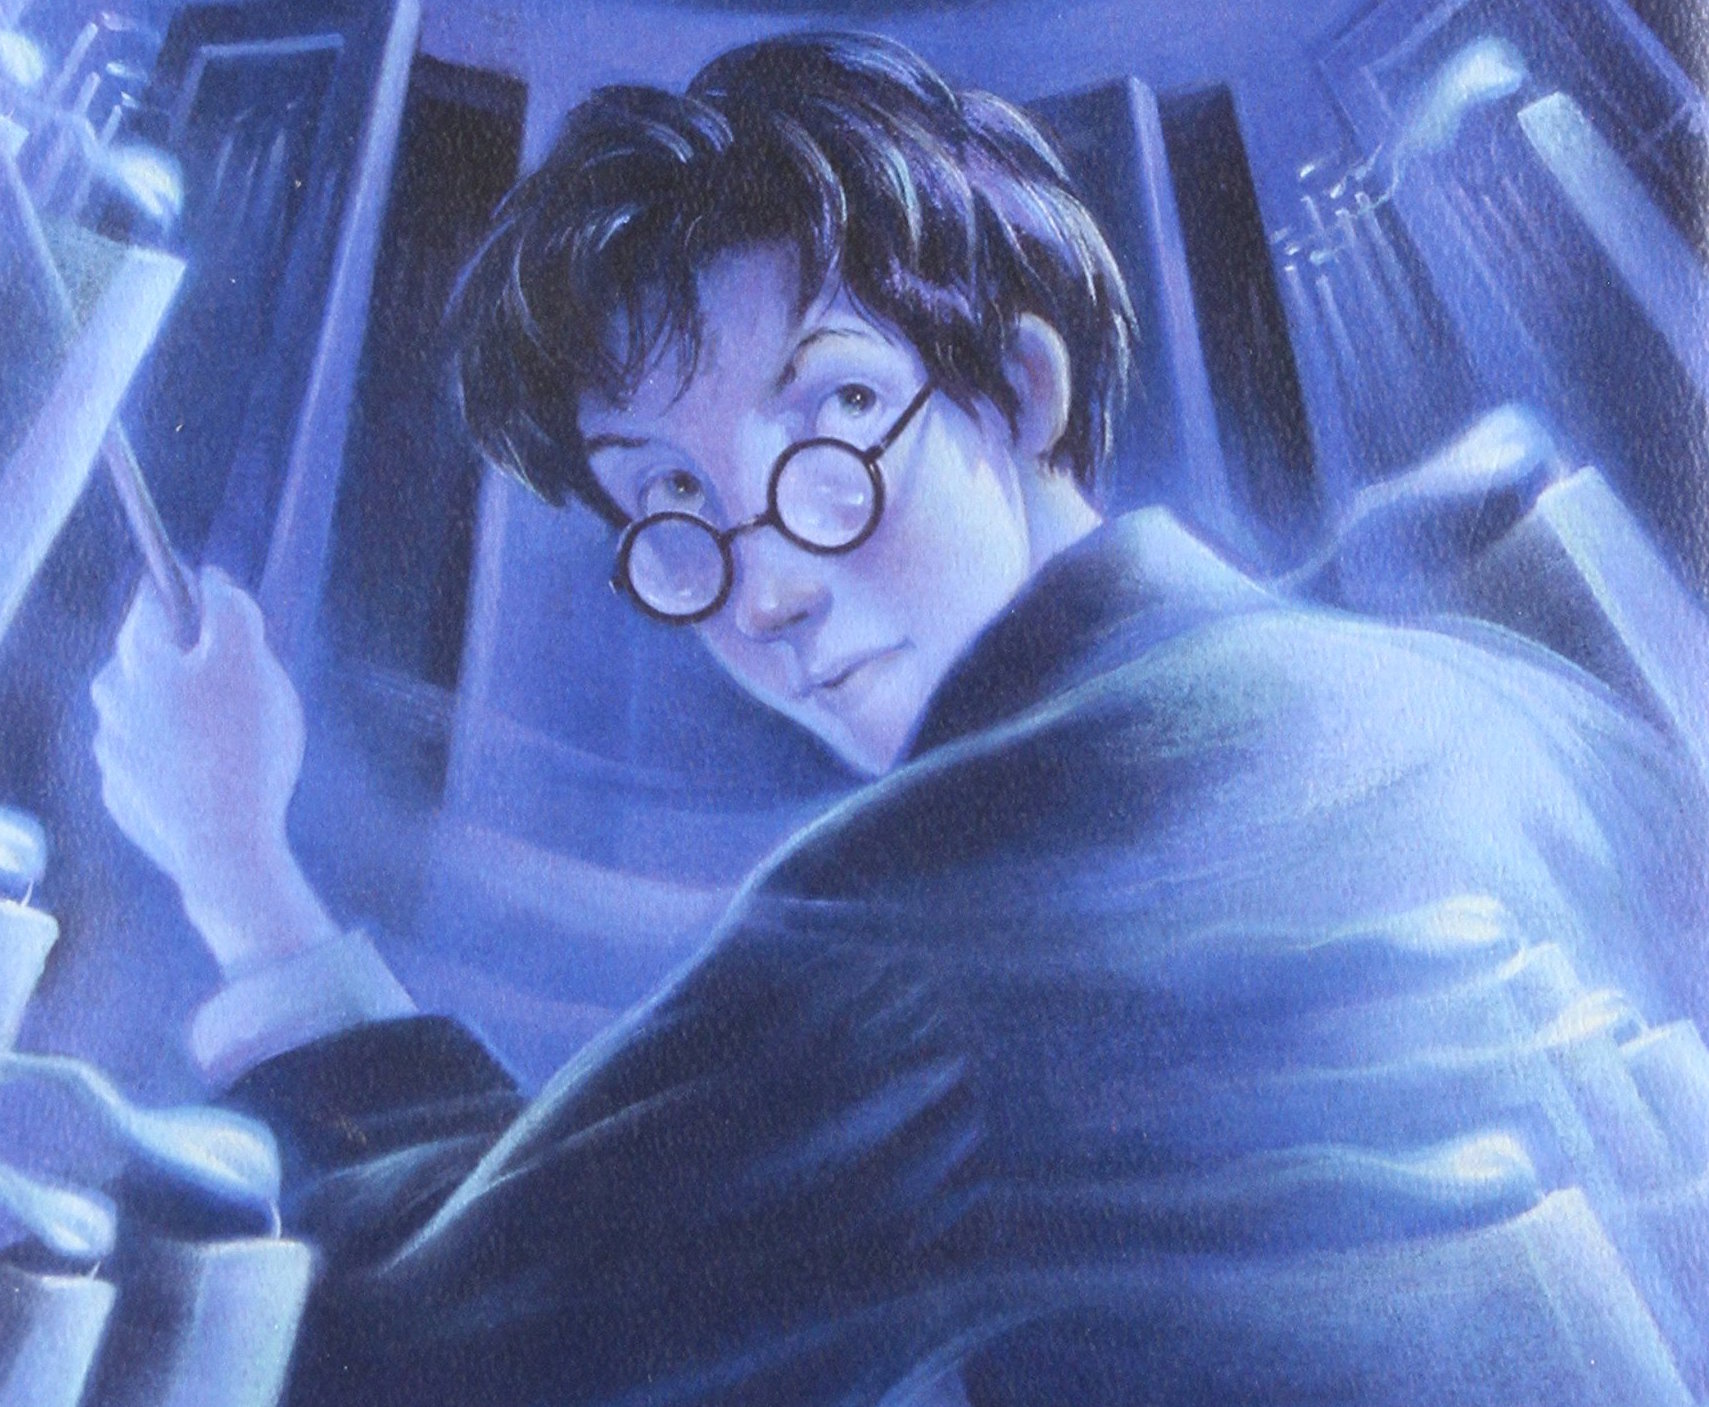 Close-up of the Scholastic cover of Harry Potter and the Order of the Phoenix.  Everything is in shades of blue.  You see Harry looking over his left shoulder, toward the audience, a very serious expression on his face, wand lefted vertically in his left fist.